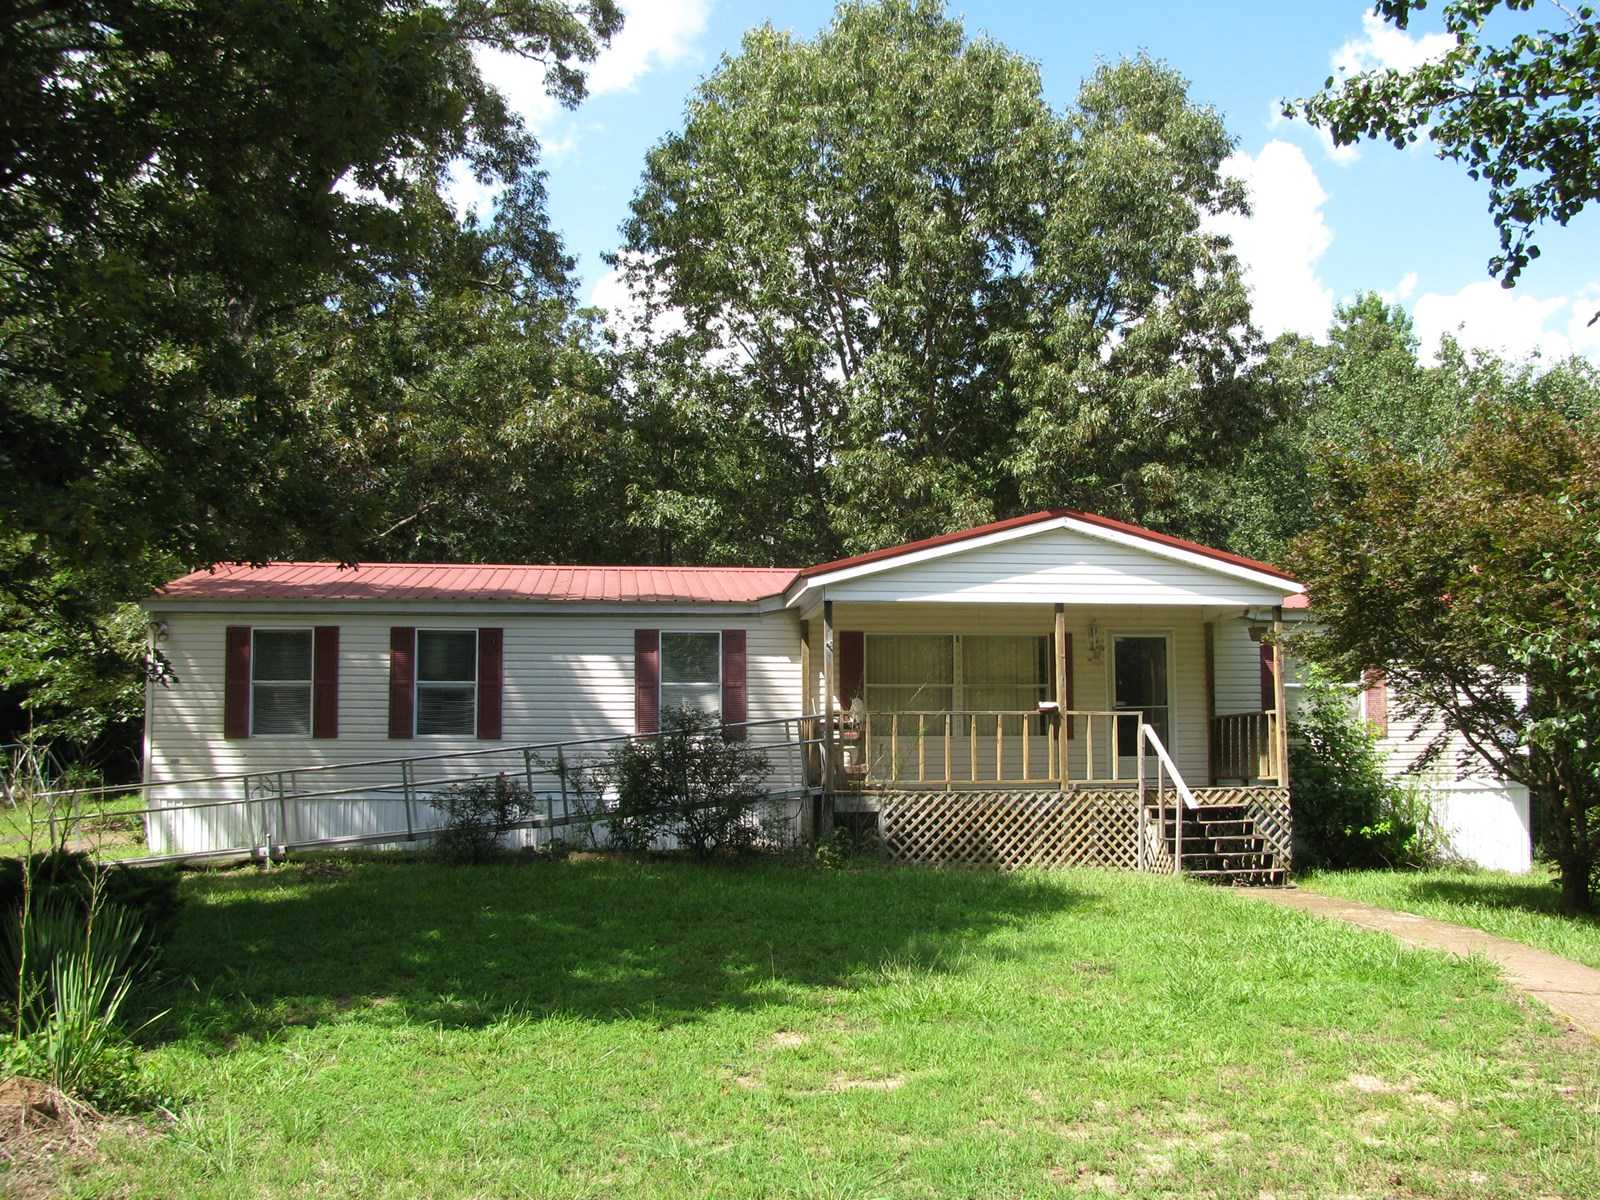 3 BEDROOM HOME IN TN FOR SALE, STORAGE BUILDING, DECK